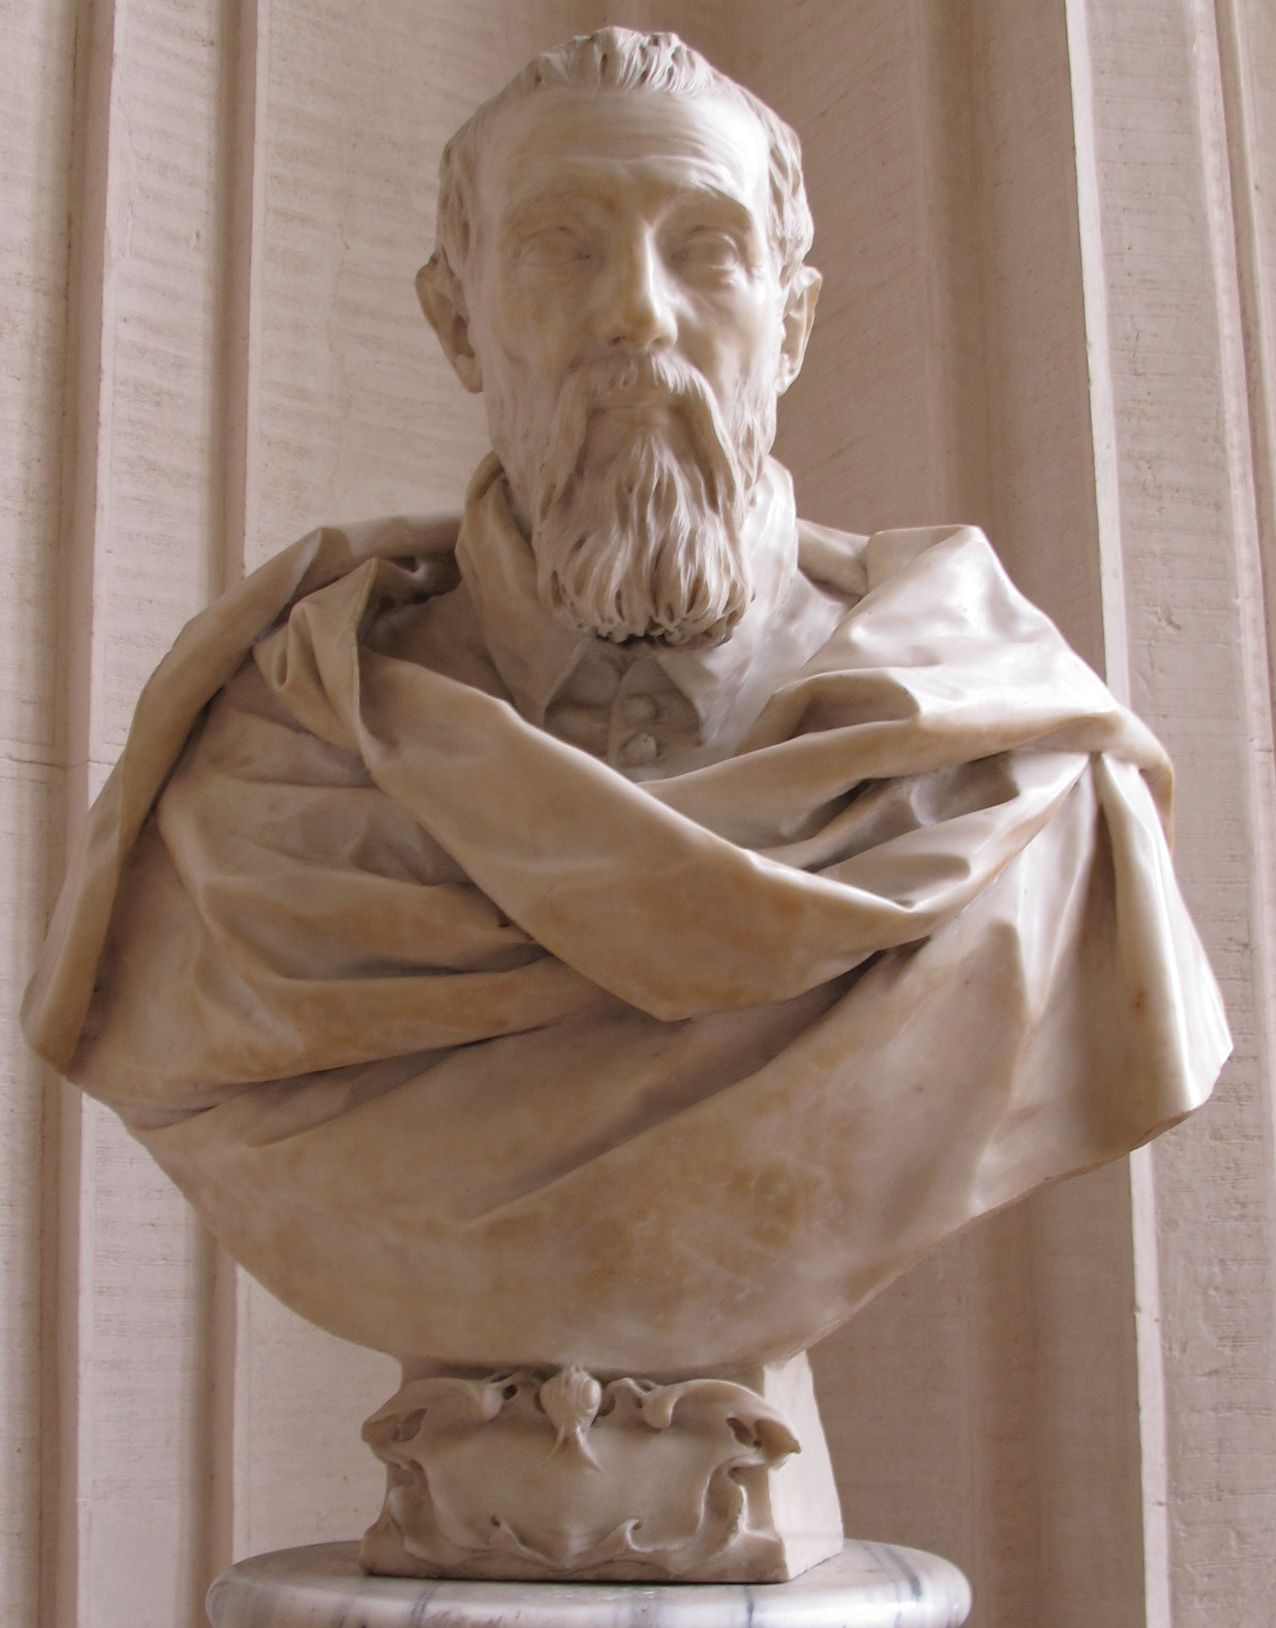 giovanni battista santoni gian lorenzo berini sculptures bust of giovanni battista santoni google search gian bernini